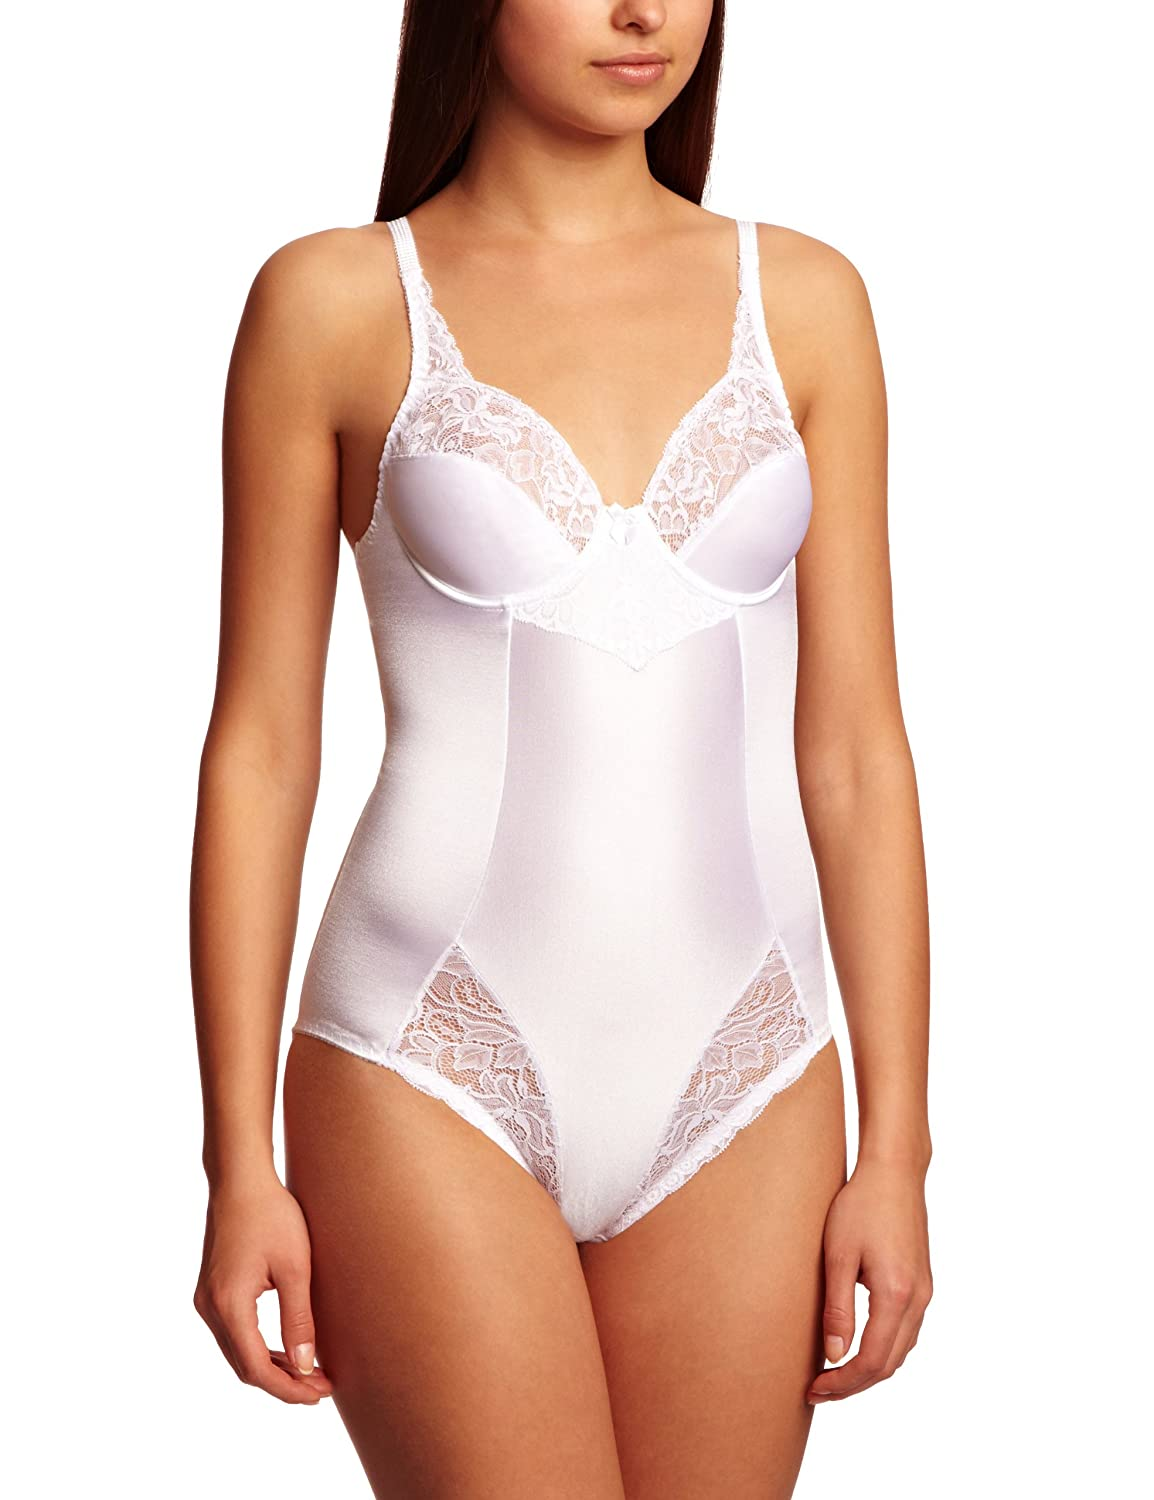 Charnos Superfit Full Cup Bodyshaper 171